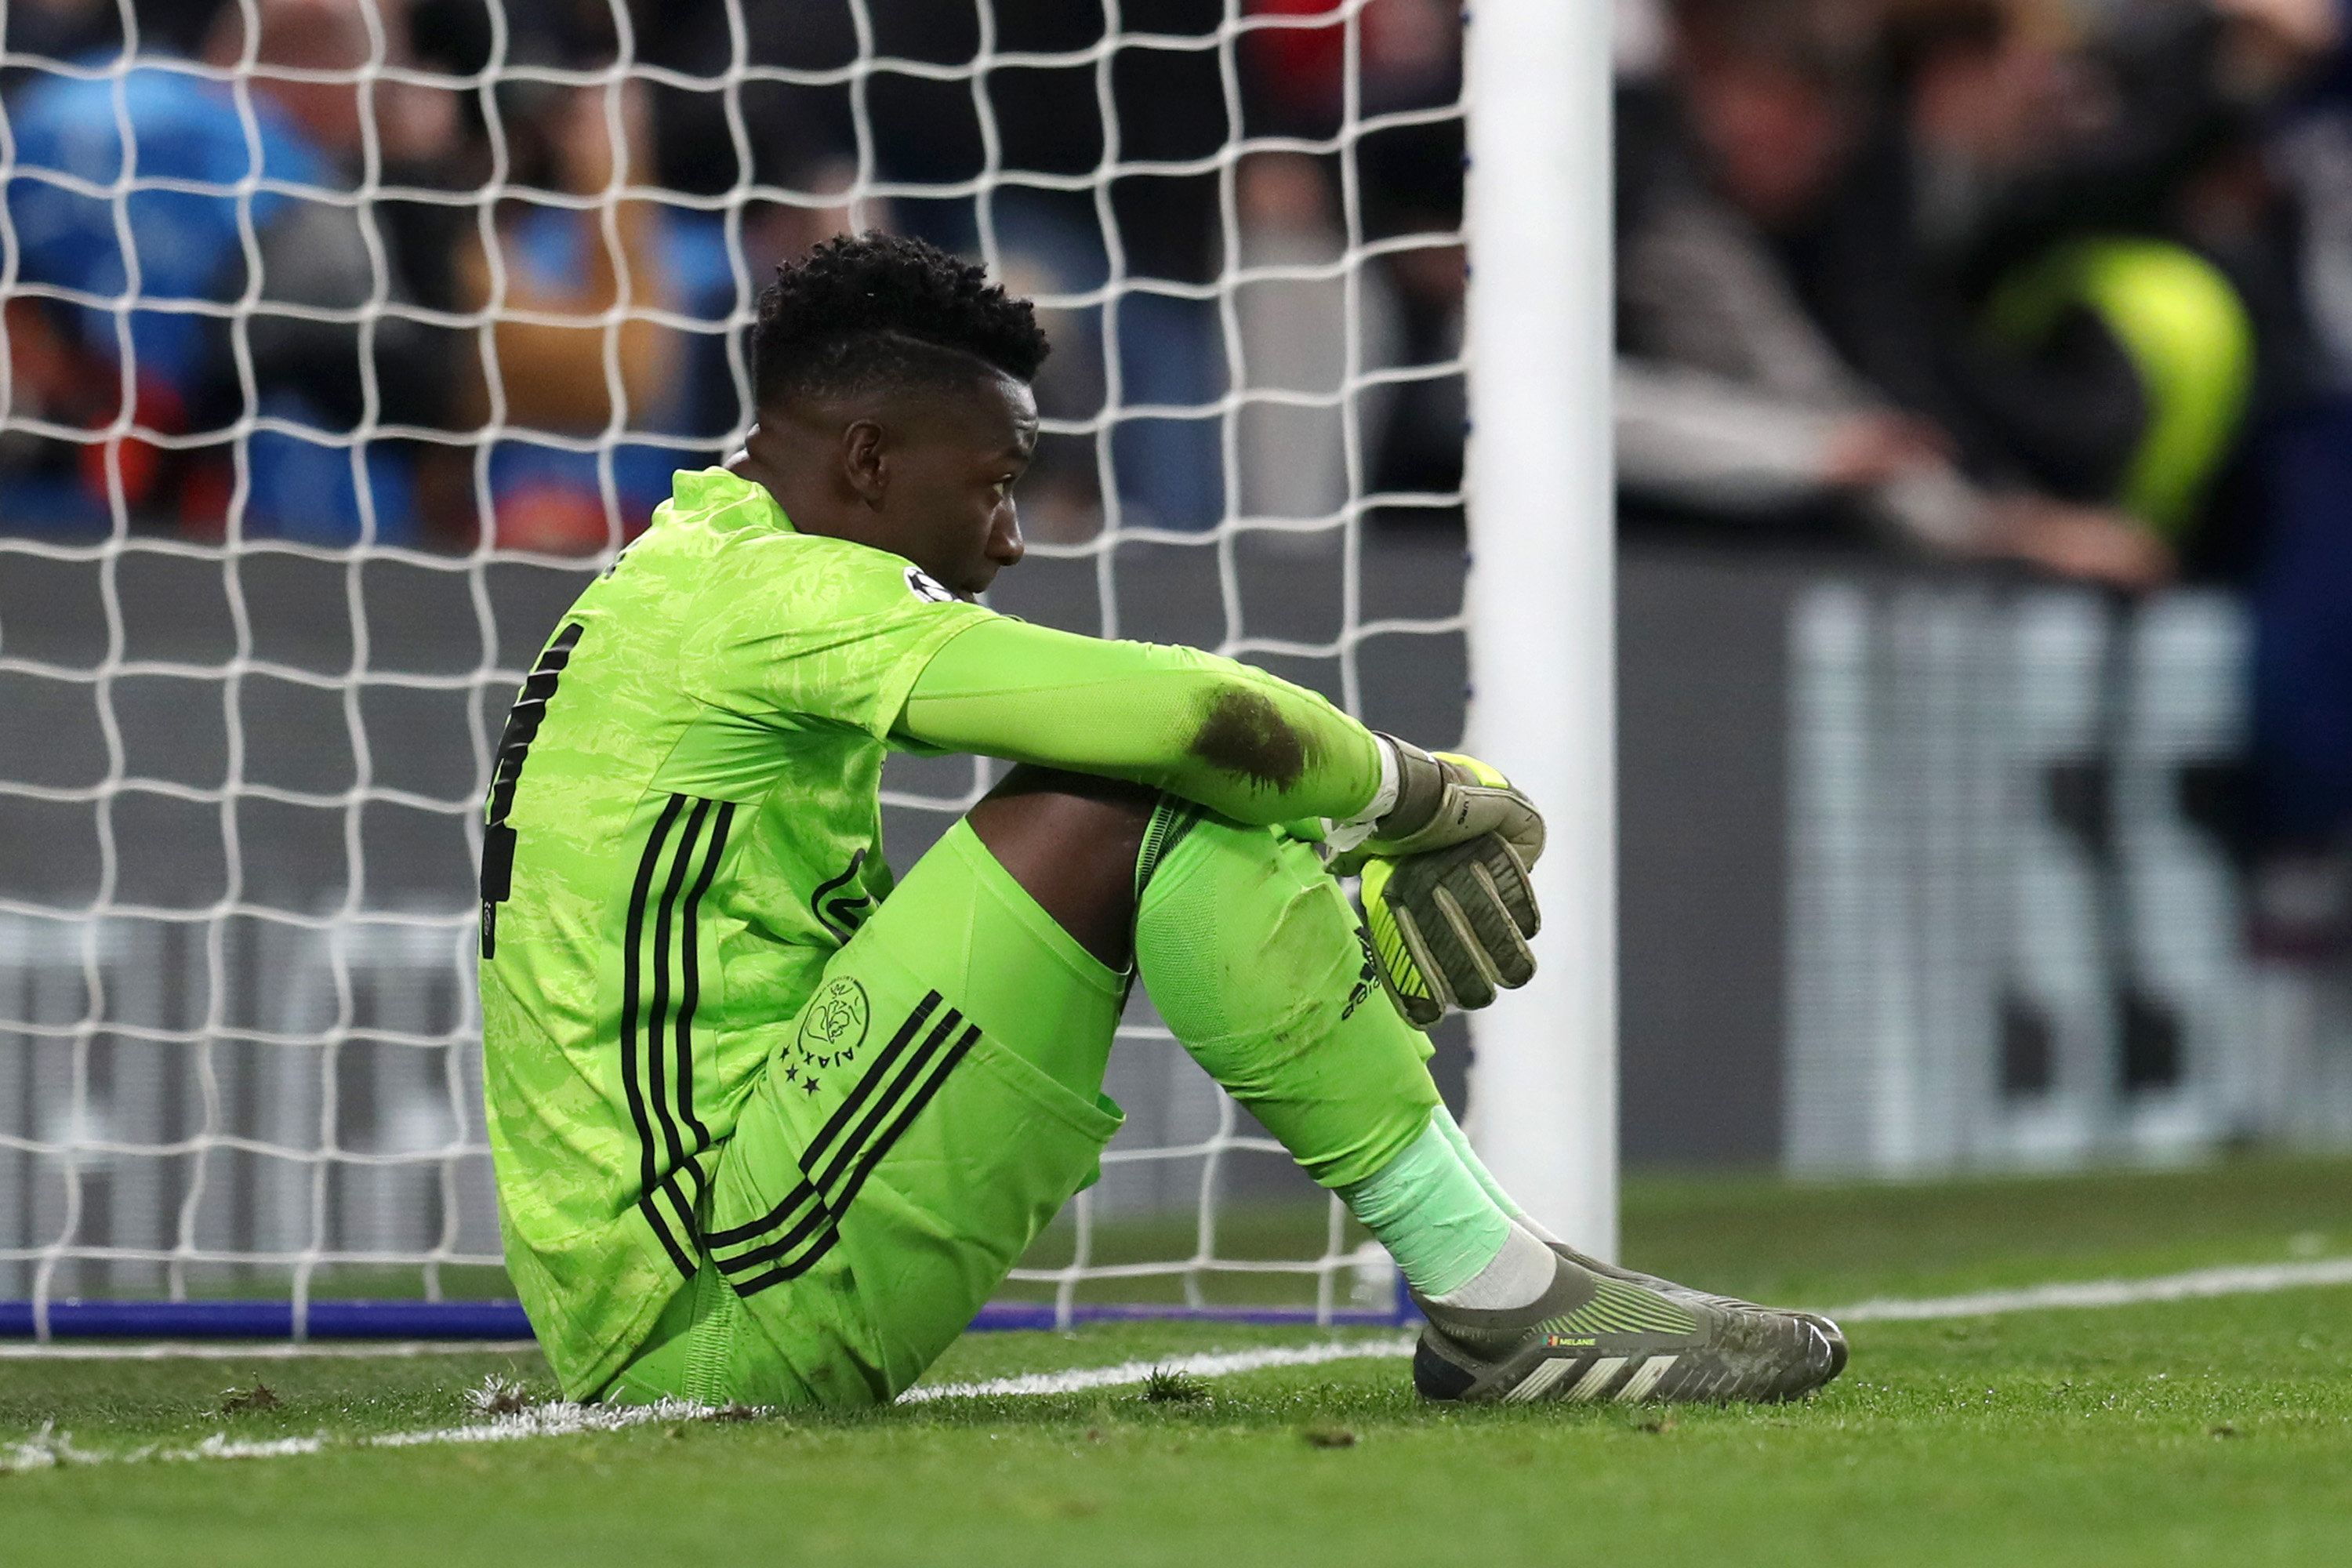 Andre Onana of AFC Ajax looks dejected during the clash with Chelsea.